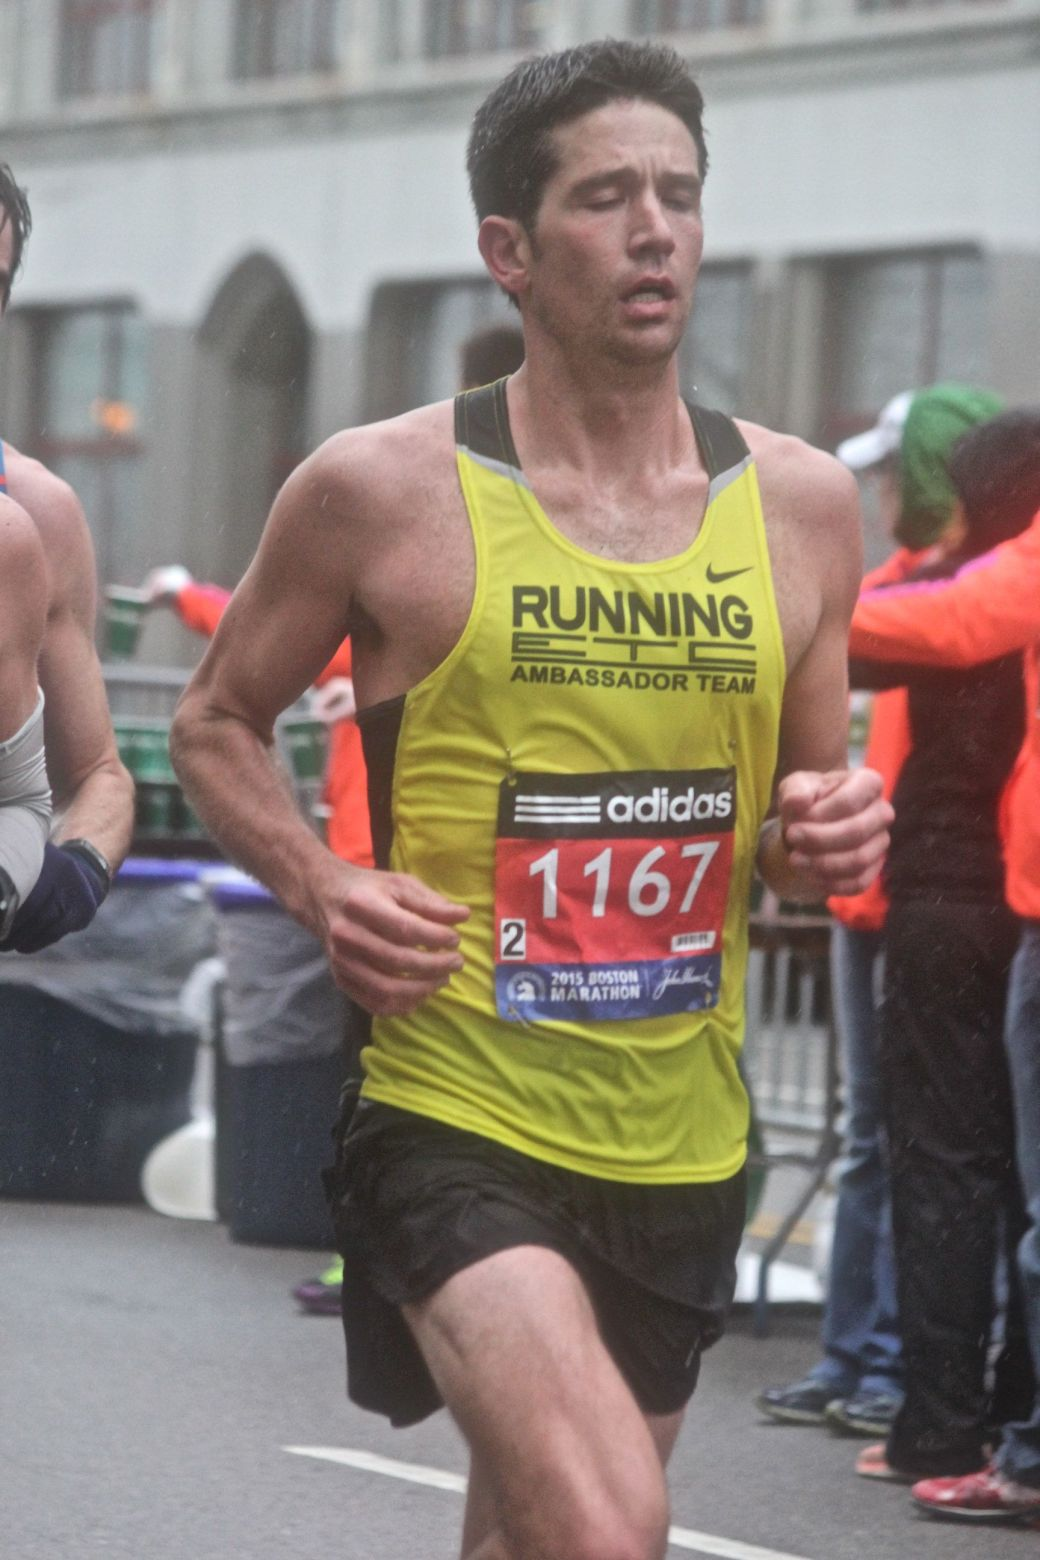 boston marathon april 20 2015 racer number 1167